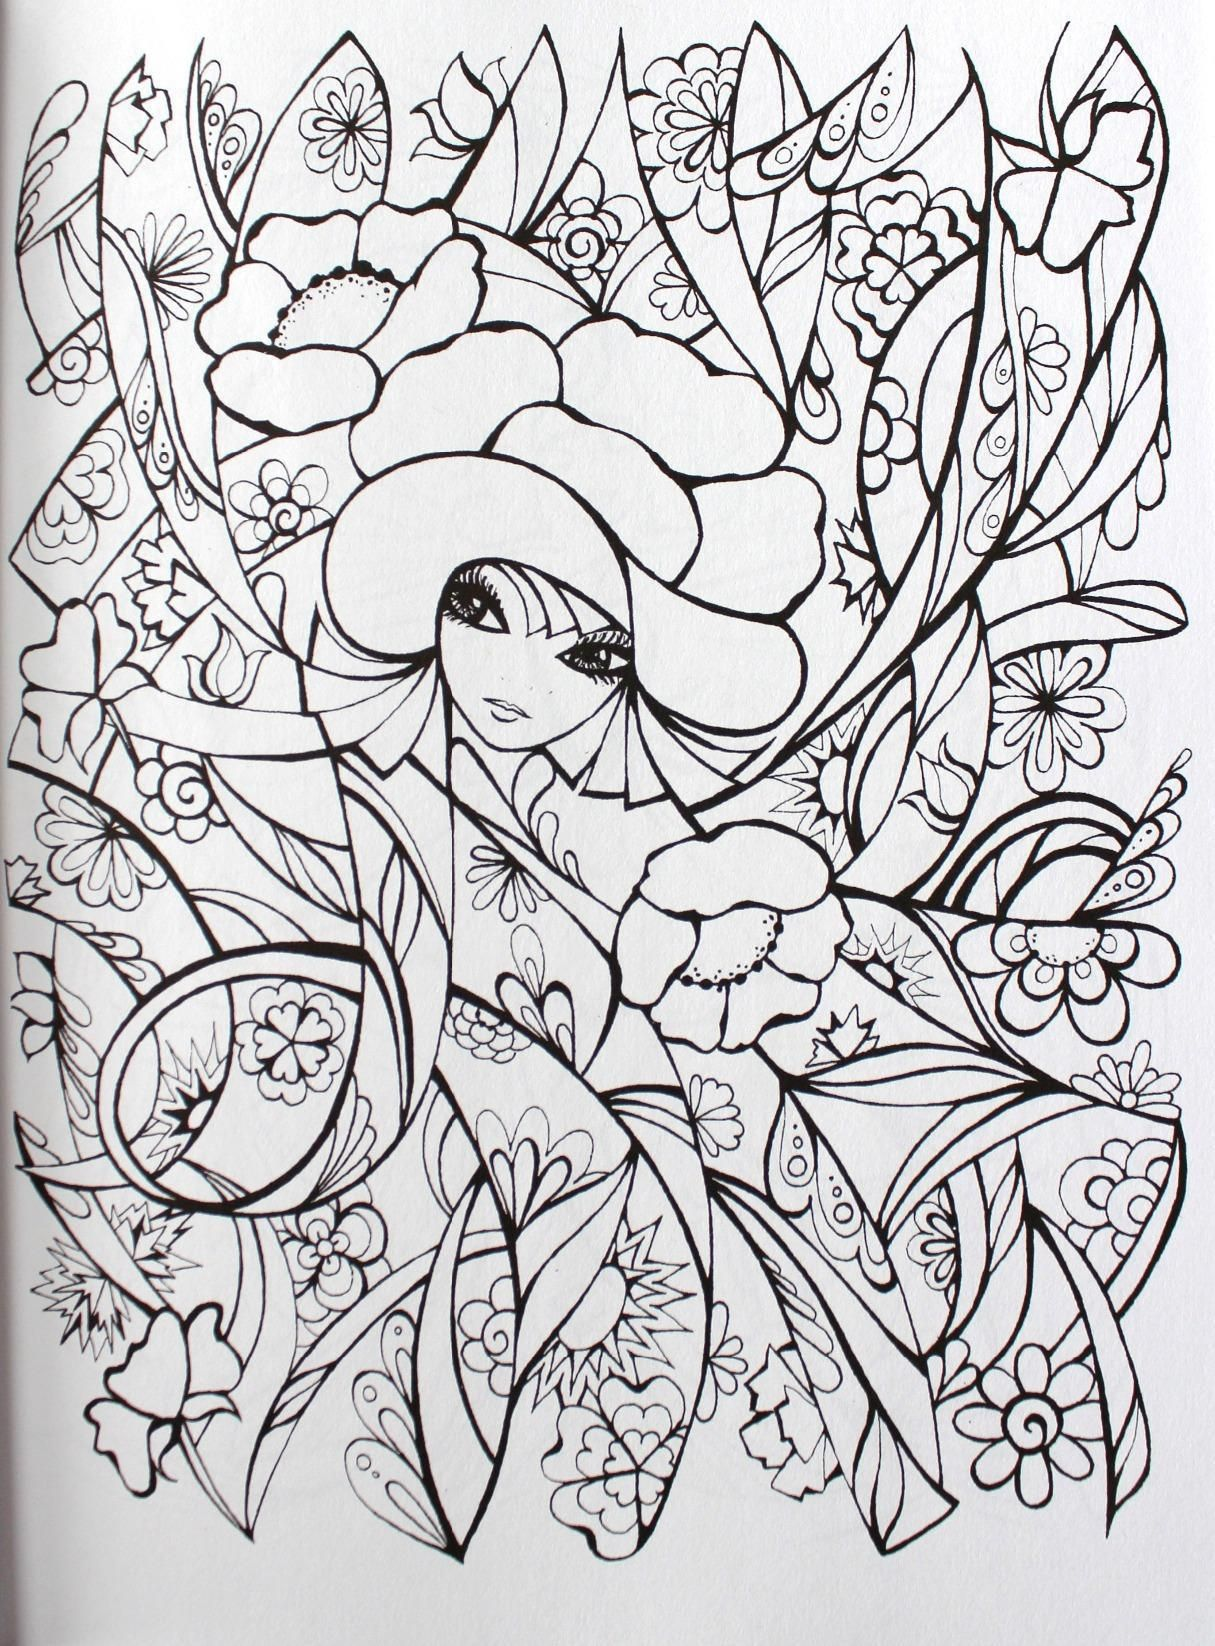 Creative Haven Fanciful Faces Coloring Book Creative Haven Coloring Books Miryam Adatto Creativ Creative Haven Coloring Books Coloring Books Coloring Pages [ 1646 x 1215 Pixel ]